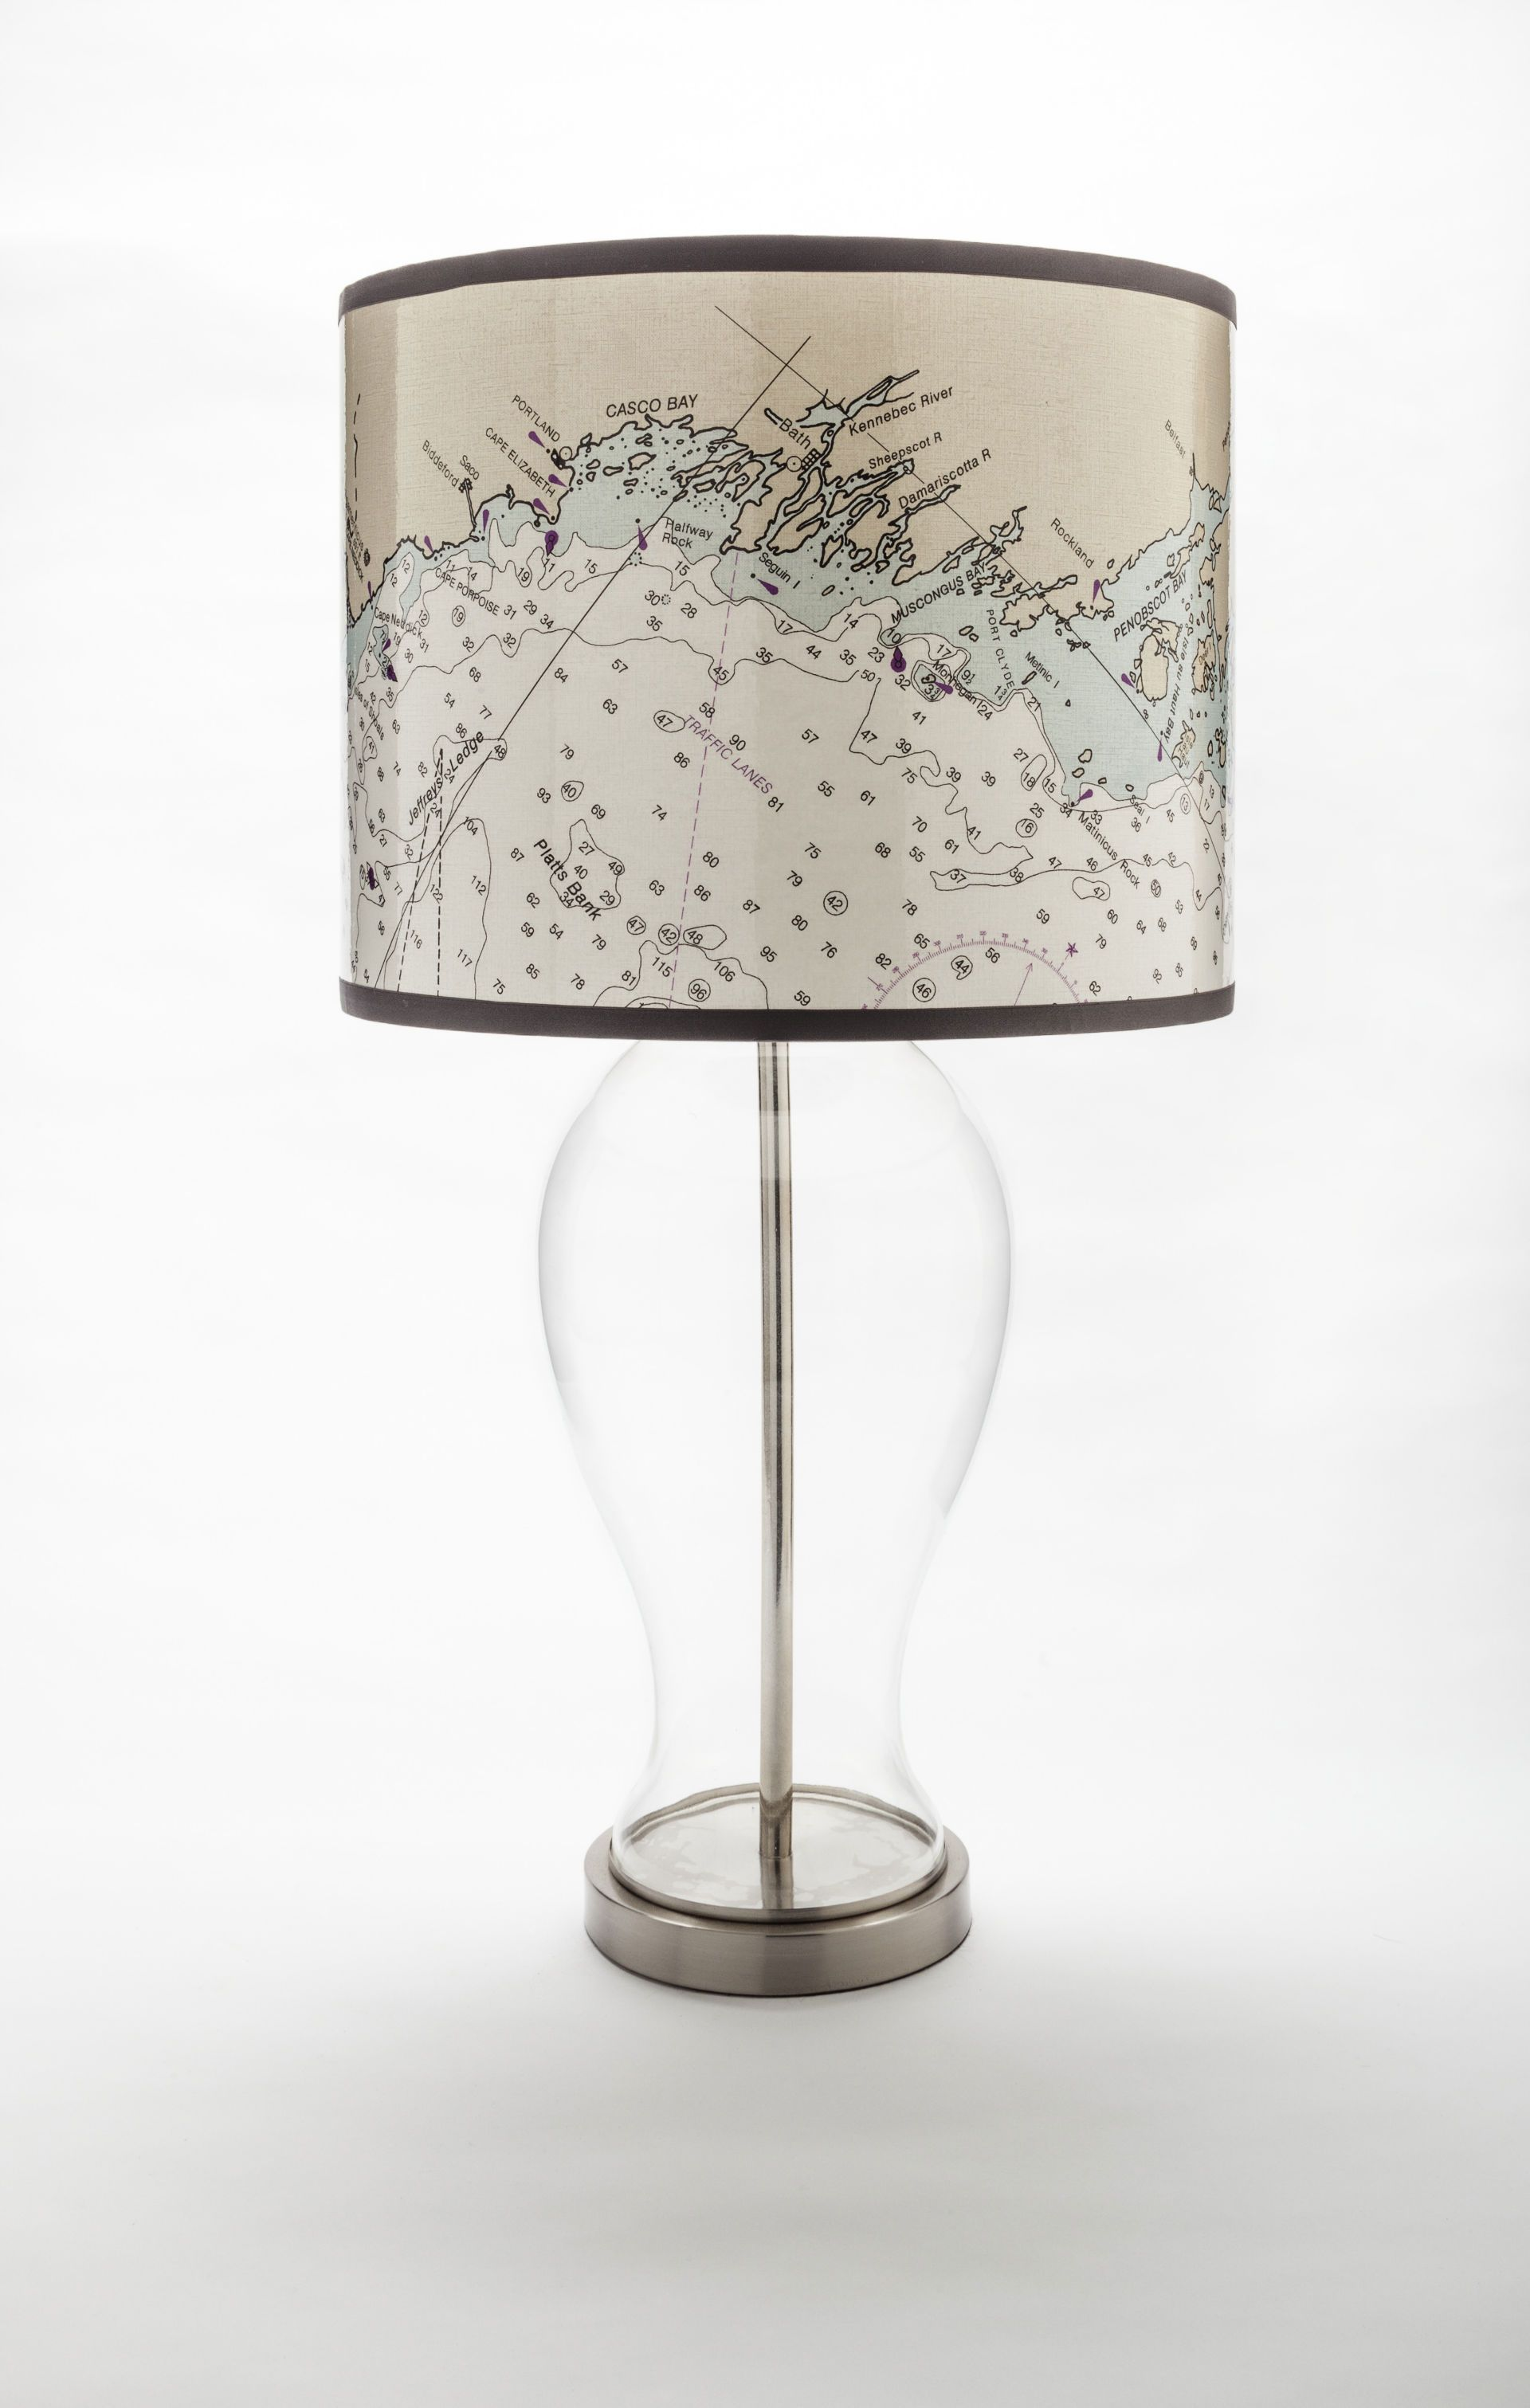 x large nautical chart lamp shade 150 theorangechairstudiocom maine gifts pinterest shades lamps and lamp shades